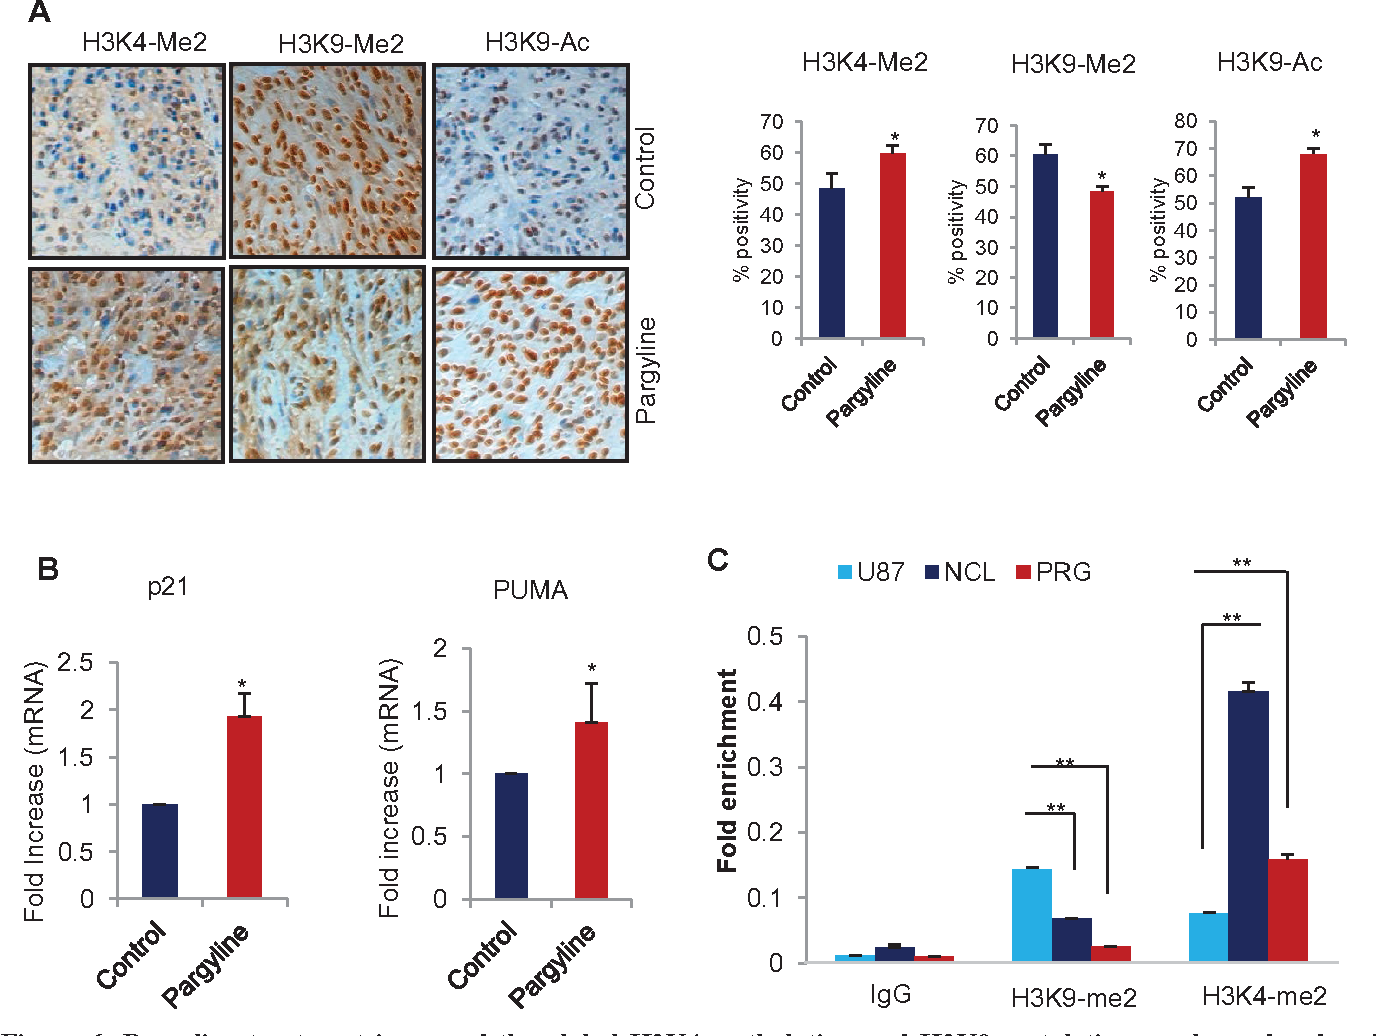 Figure 6: Pargyline treatment increased the global h3K4 methylation and h3K9 acetylation marks and reduced the h3K9 methylation in xenograft tumors. (A) IHC analysis of H3K4-me2, H3K9-me2 and H3K9-Ac marks was done on xenograft tumors that were treated with vehicle or pargyline (Left panel). Quantitation was done as described in the methods section. All data presented are the mean ± SEM. *, p< 0.05. (Right panel). (B) Total RNA was isolated from control or pargyline-treated tumors and subjected to RT-qPCR using the primers specific for p21 and PUMA. All data presented are the mean ± SEM. *, p< 0.05. (C) U87 cells were treated with pargyline or NCL-1 and ChIP analysis was performed using H3K4-me2 and H3K9-me2 antibodies and the status of epigenetic modification was analyzed using real-time PCR with p21 promoter-specific primers.